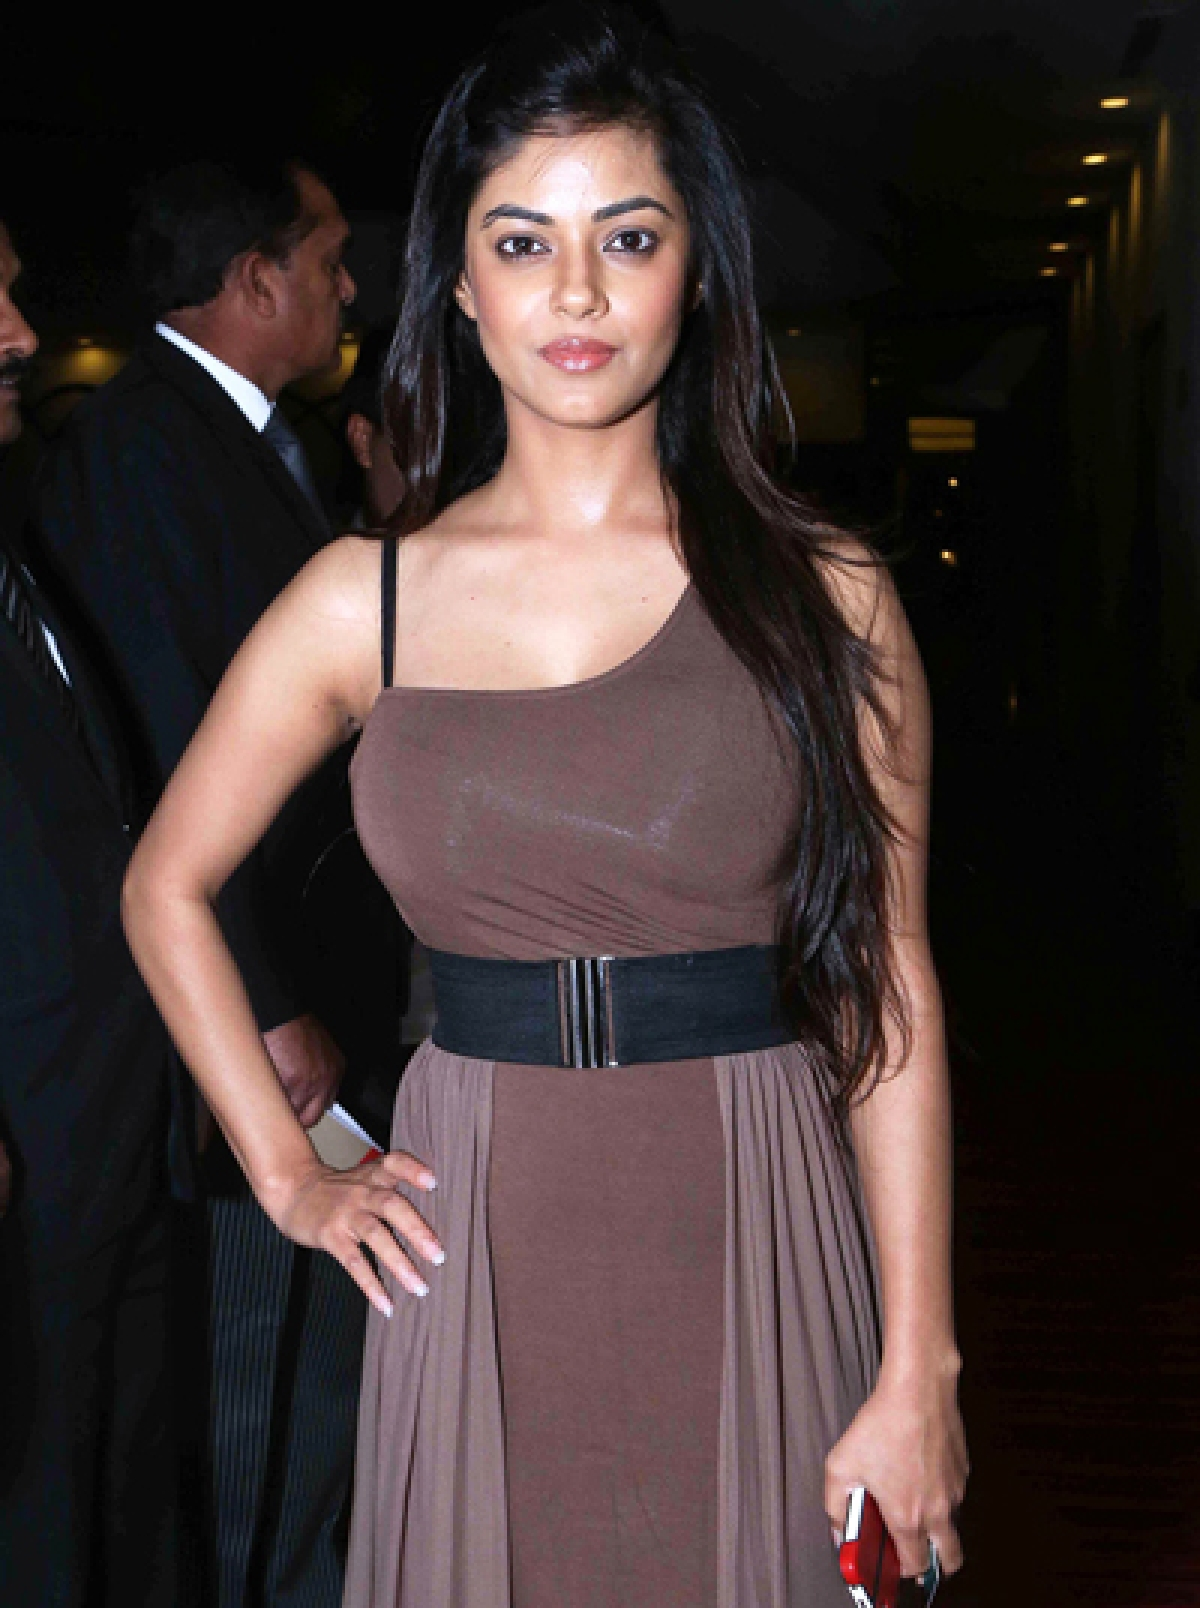 Horror beckons for Meera Chopra